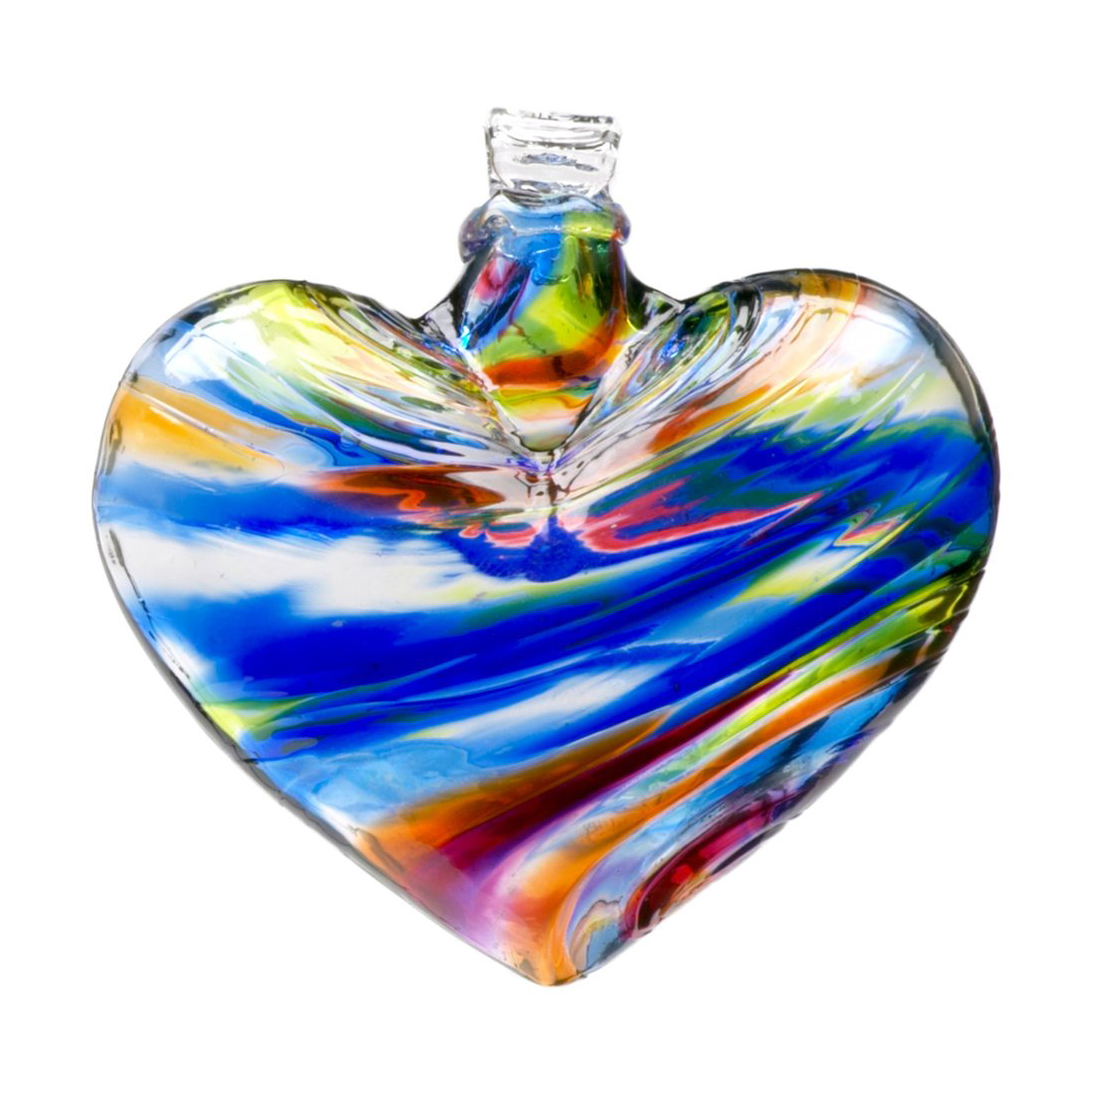 Heart of Glass Ornaments